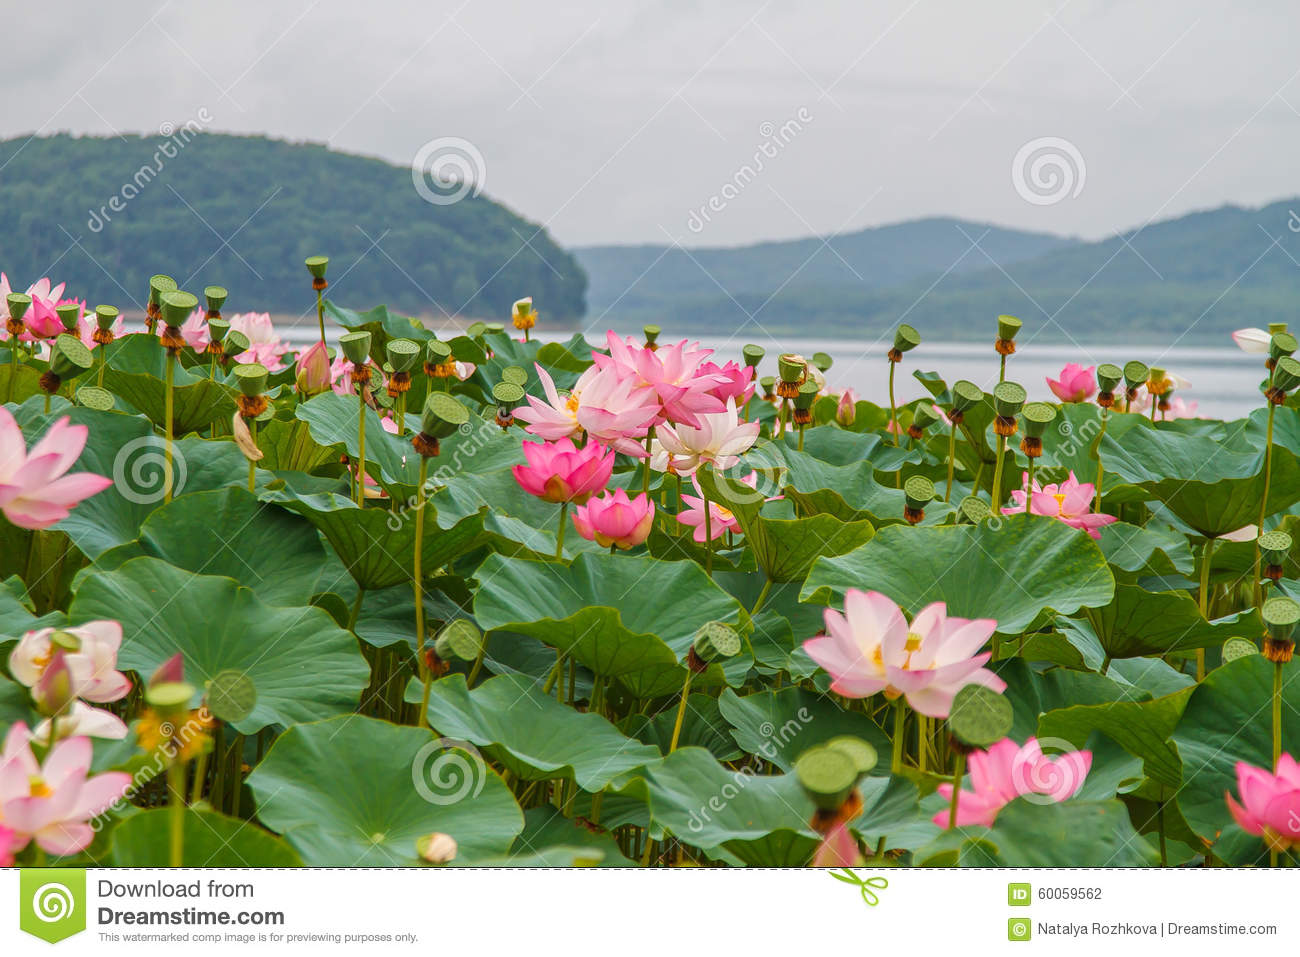 Rare and beautiful lotus flowers stock photo image of calm rare and beautiful lotus flowers izmirmasajfo